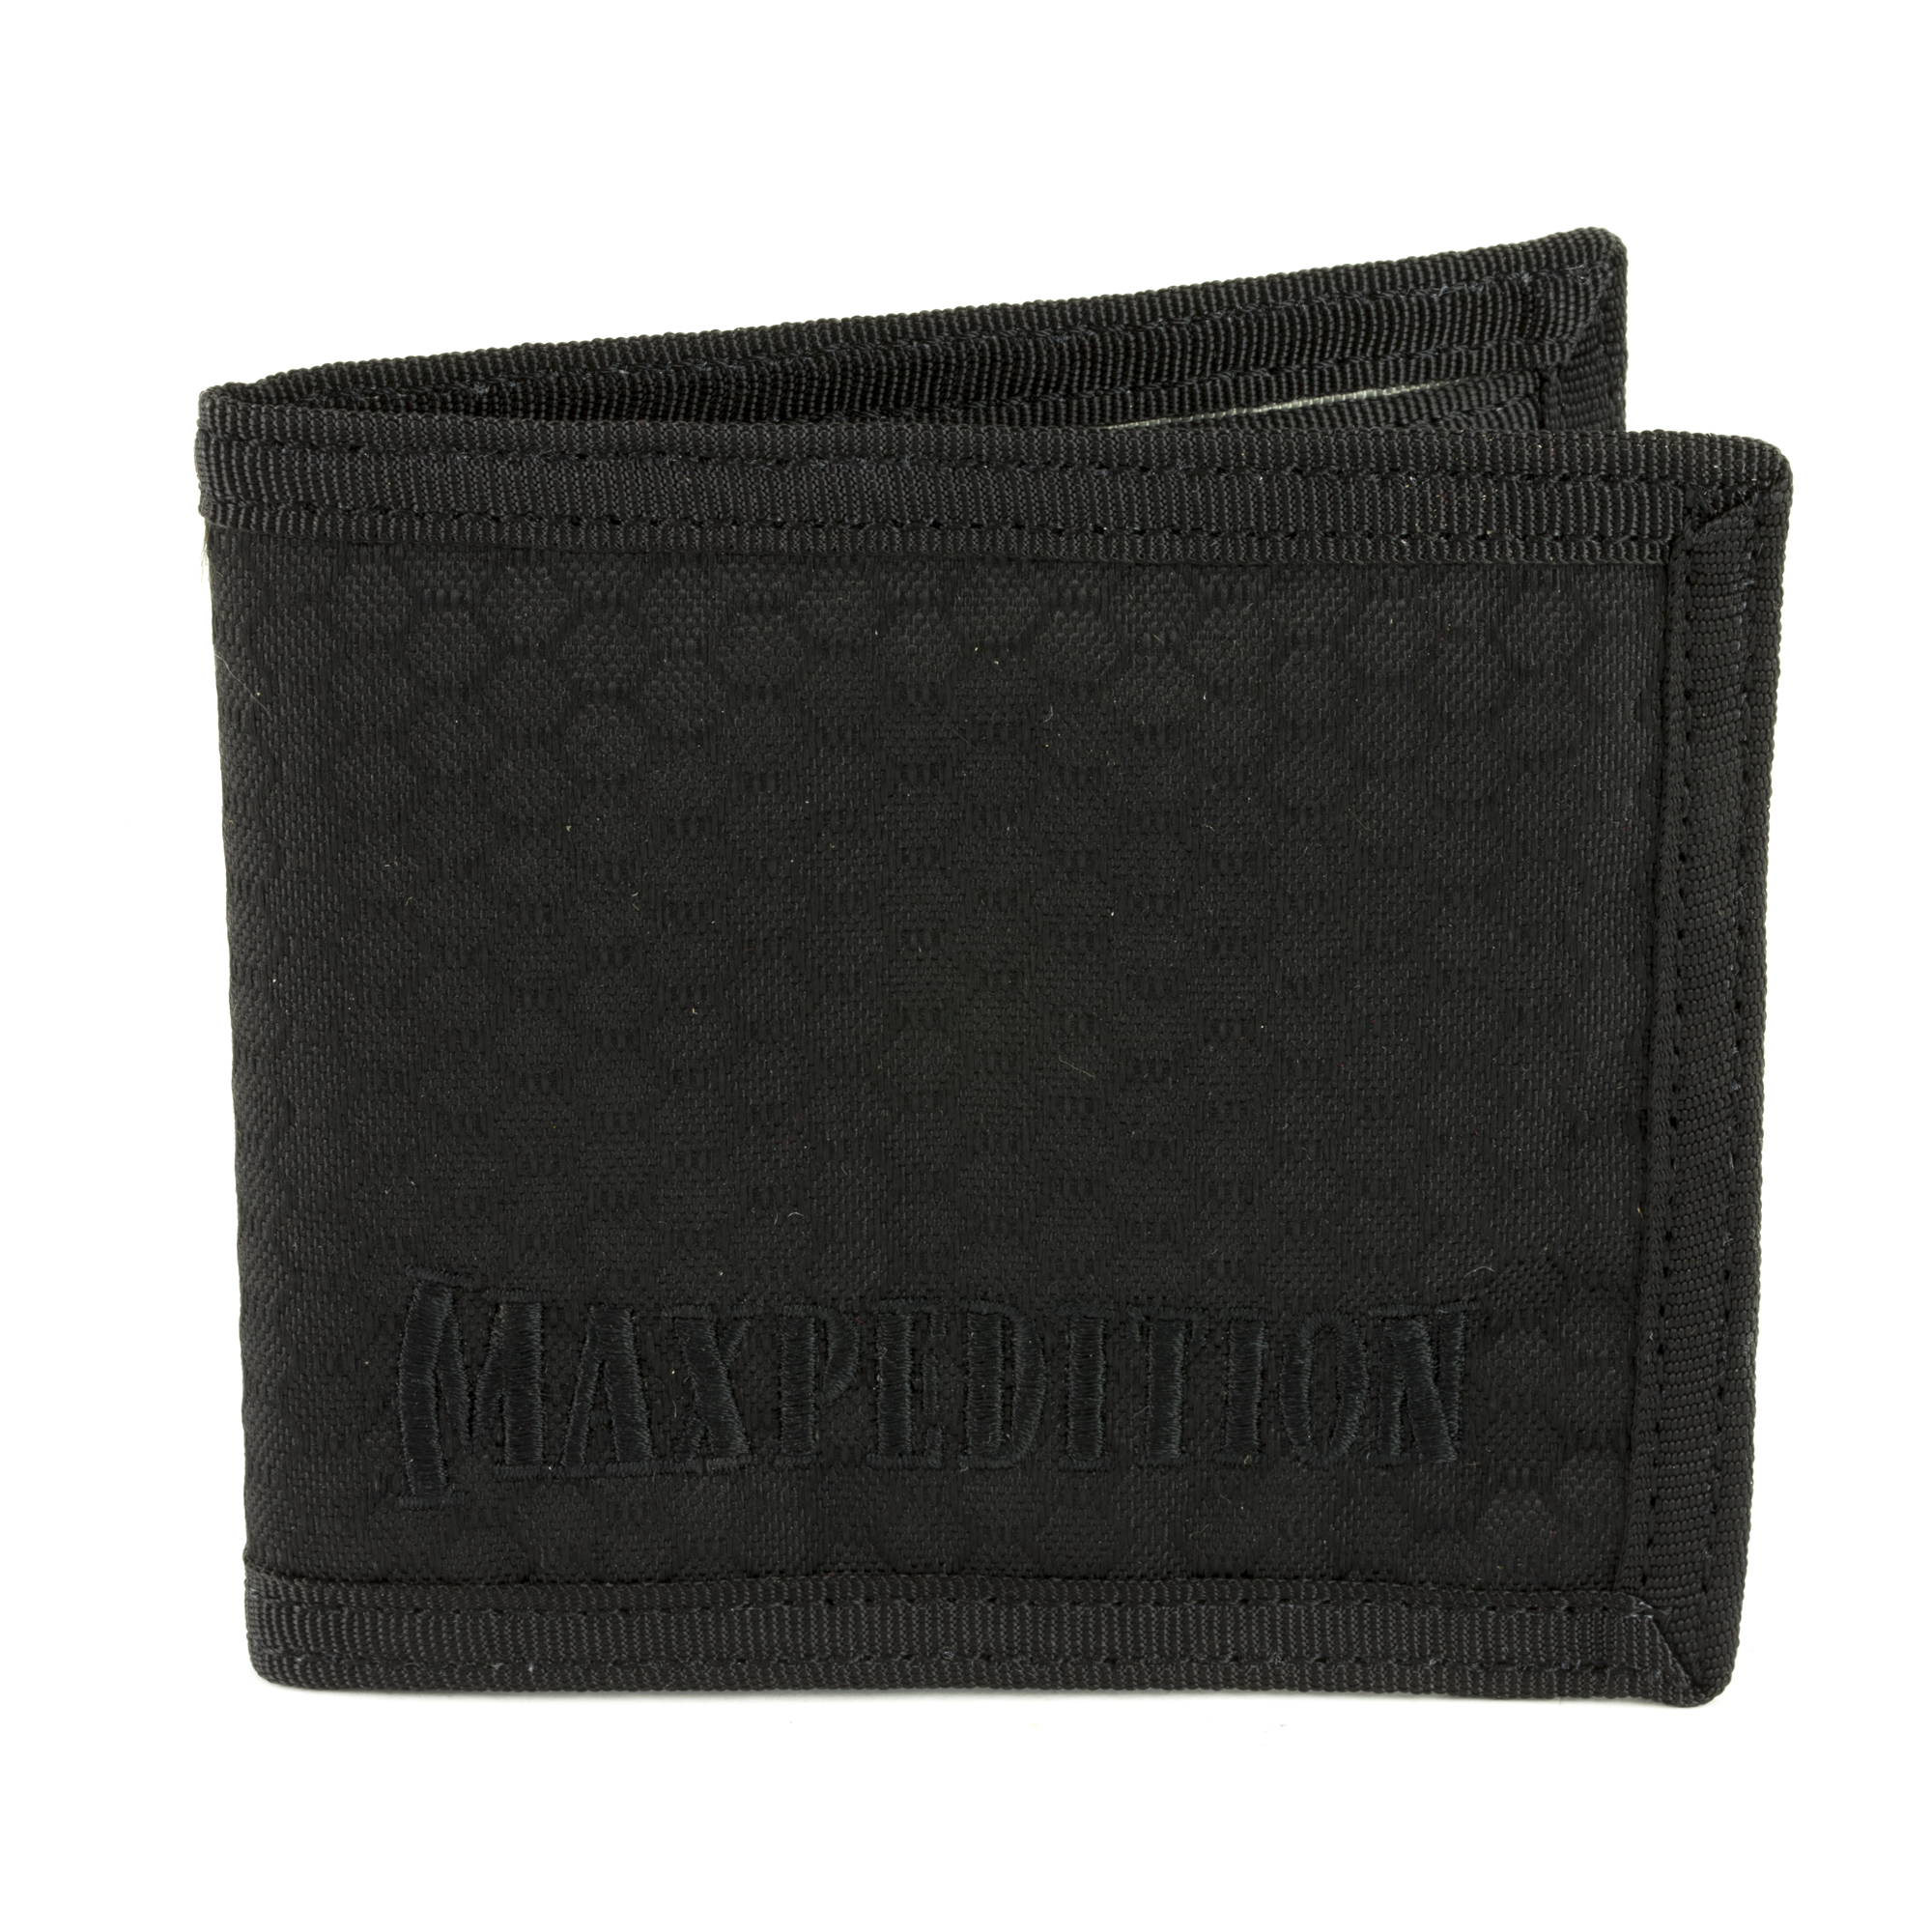 The BFW Bi-Fold Wallet has a slim bi-fold design. There is a clear vinyl window for your DL/ID. The interior has four (4) card compartments and one (1) slip pocket. Paper bill slot fits all major world currencies.